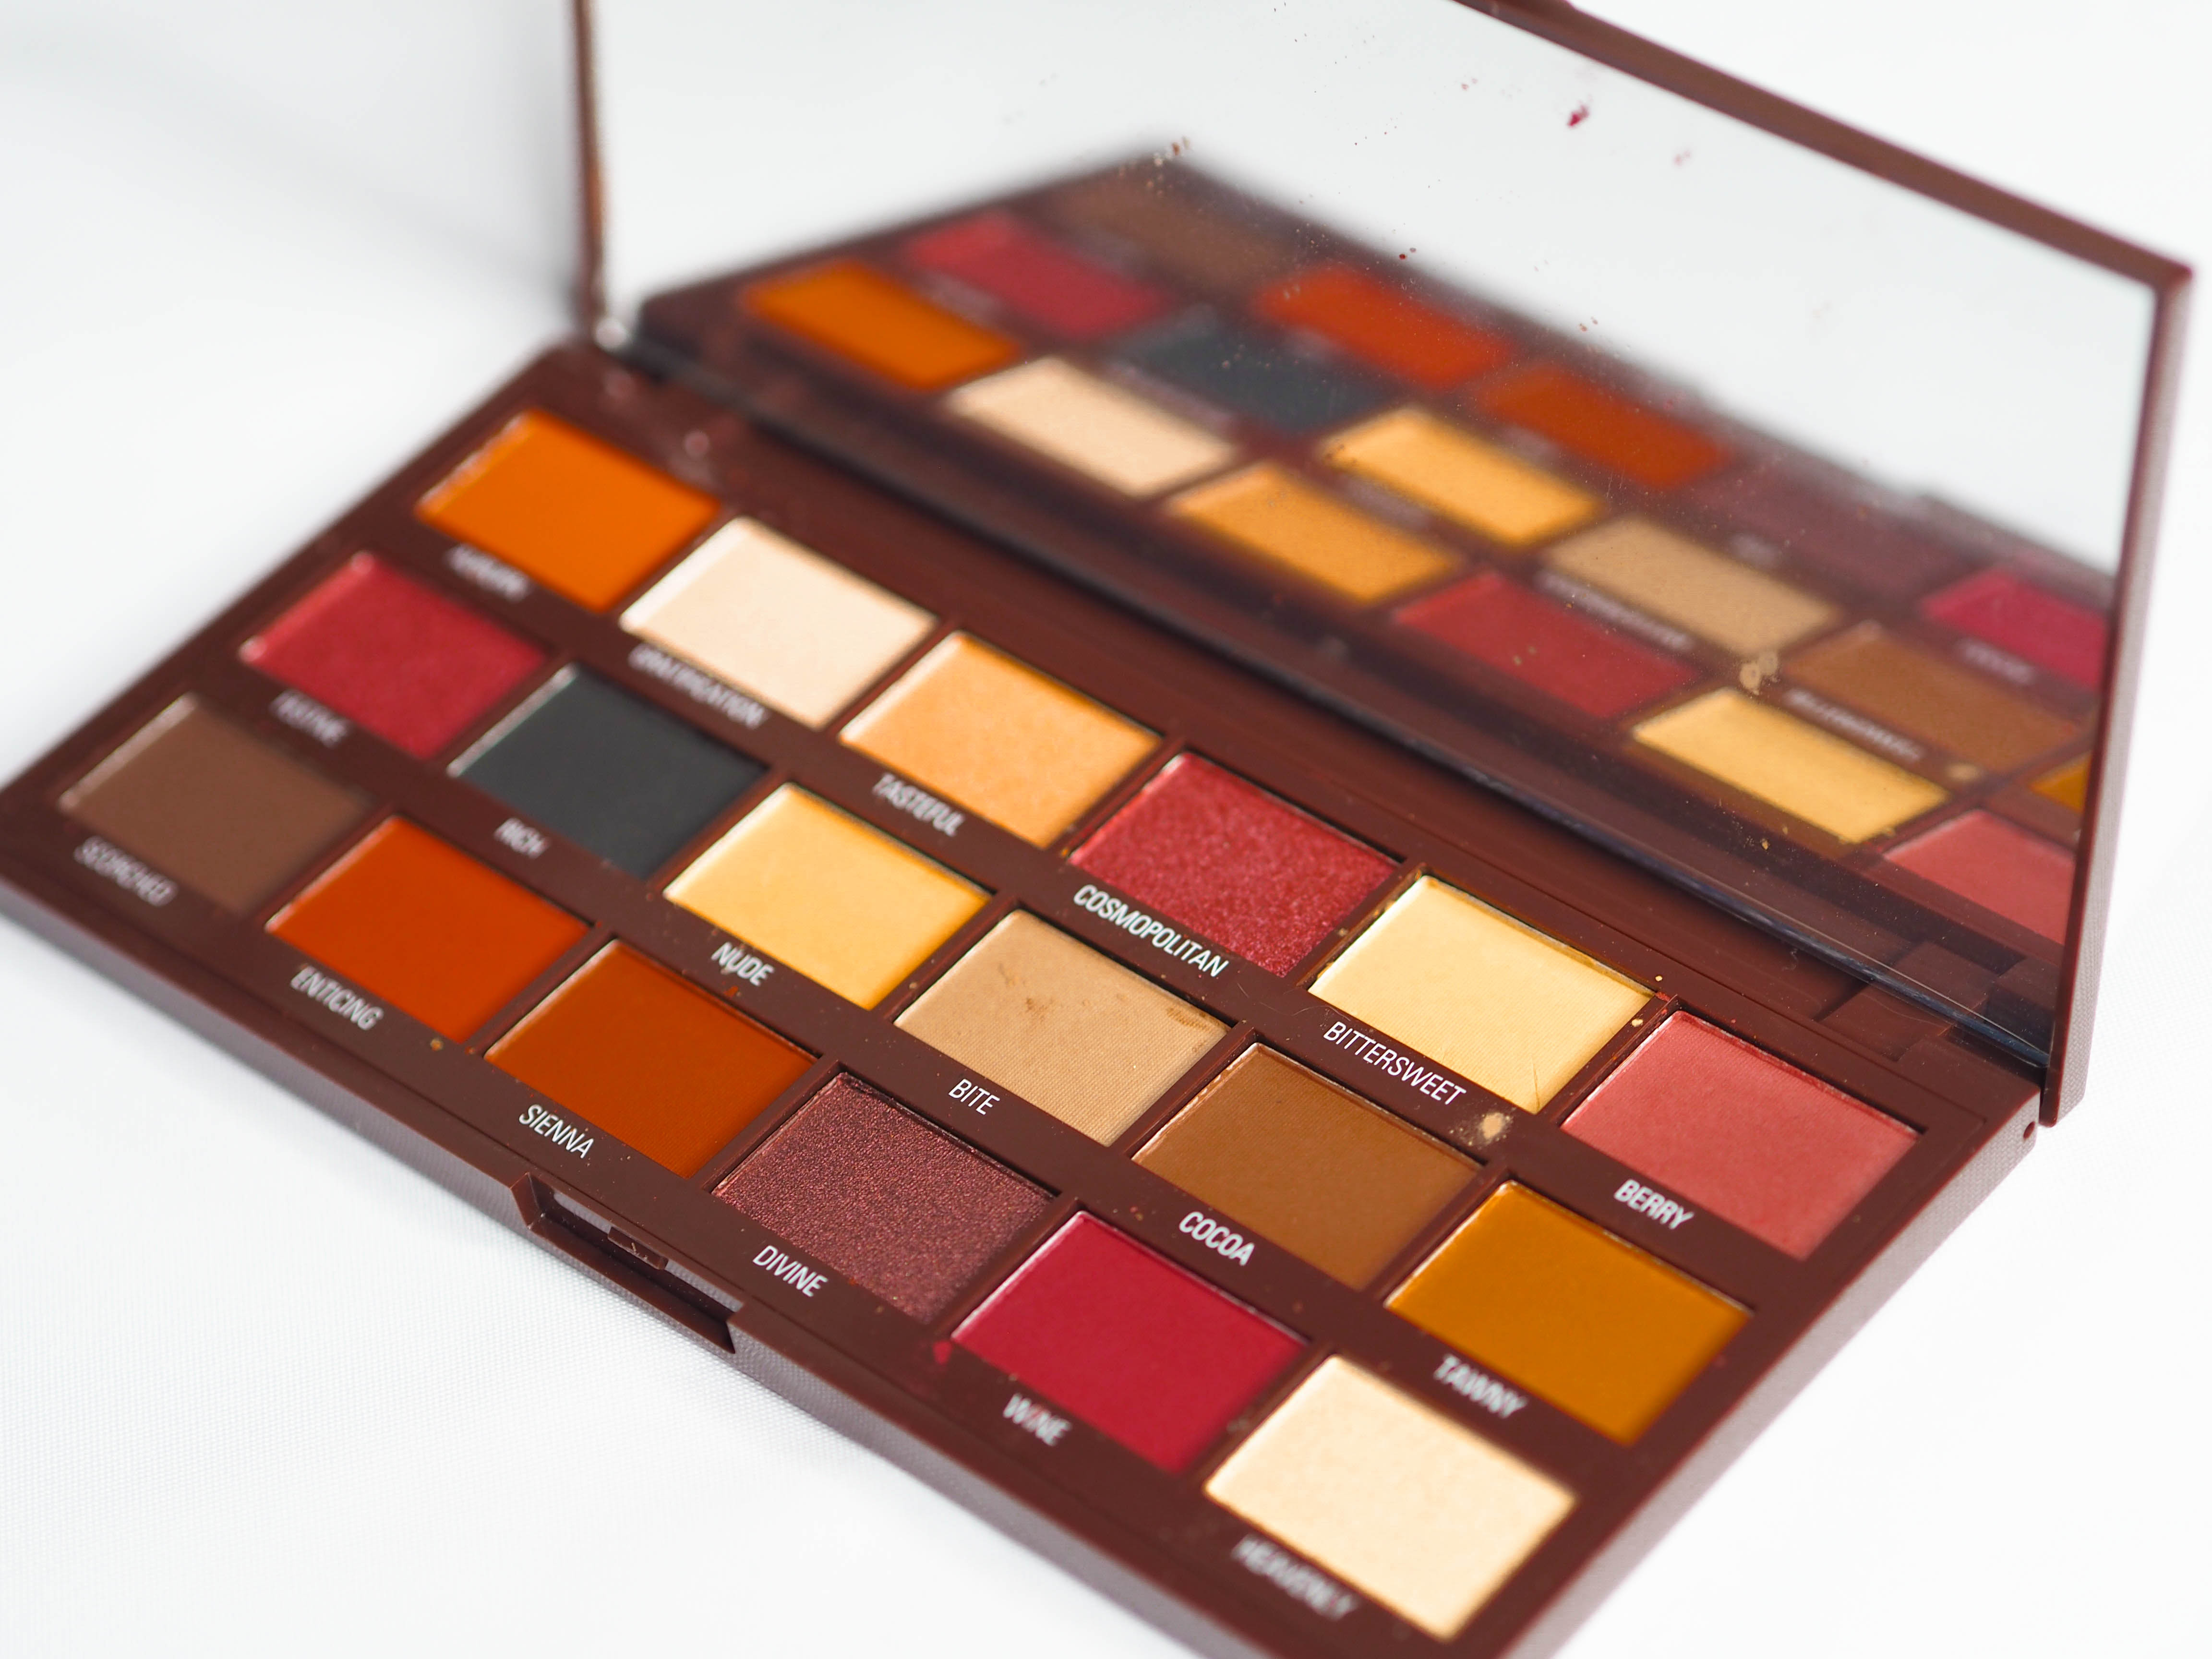 I Heart Revolution Cranberries and Chocolate Palette